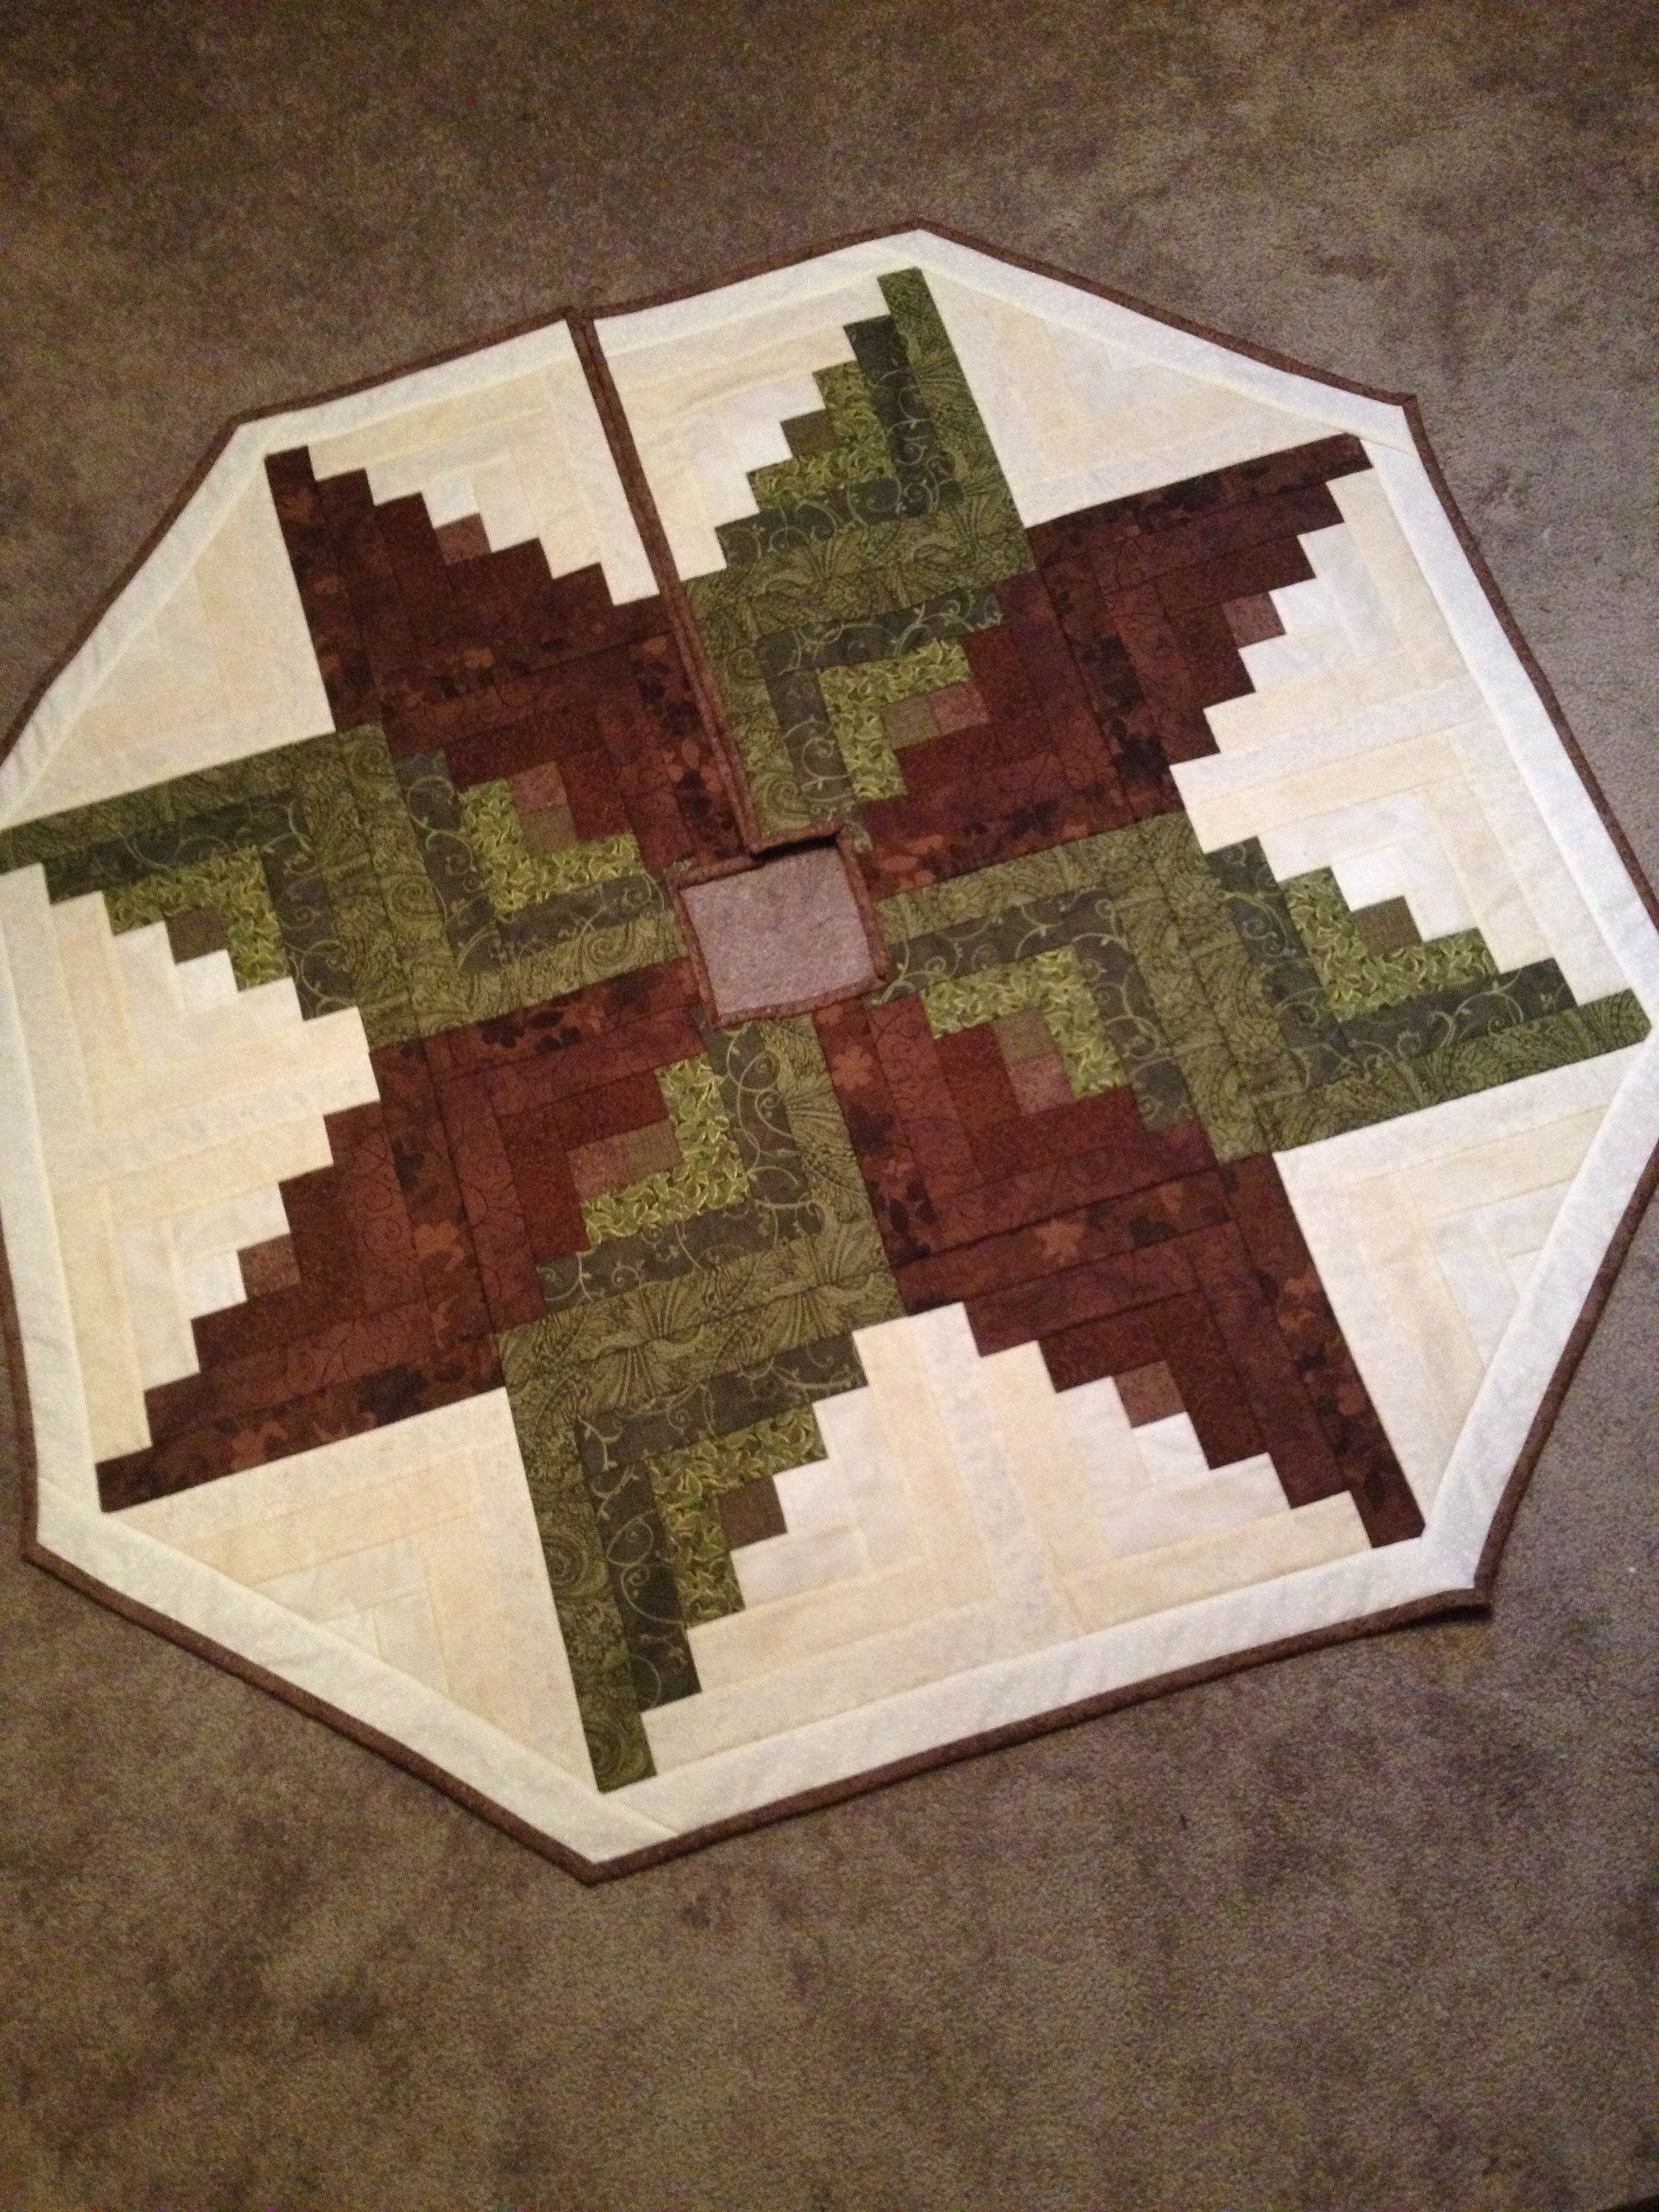 Log Cabin Christmas Tree Quilt.My Own Take On The Log Cabin Tree Skirt I Saw Used A Quilt